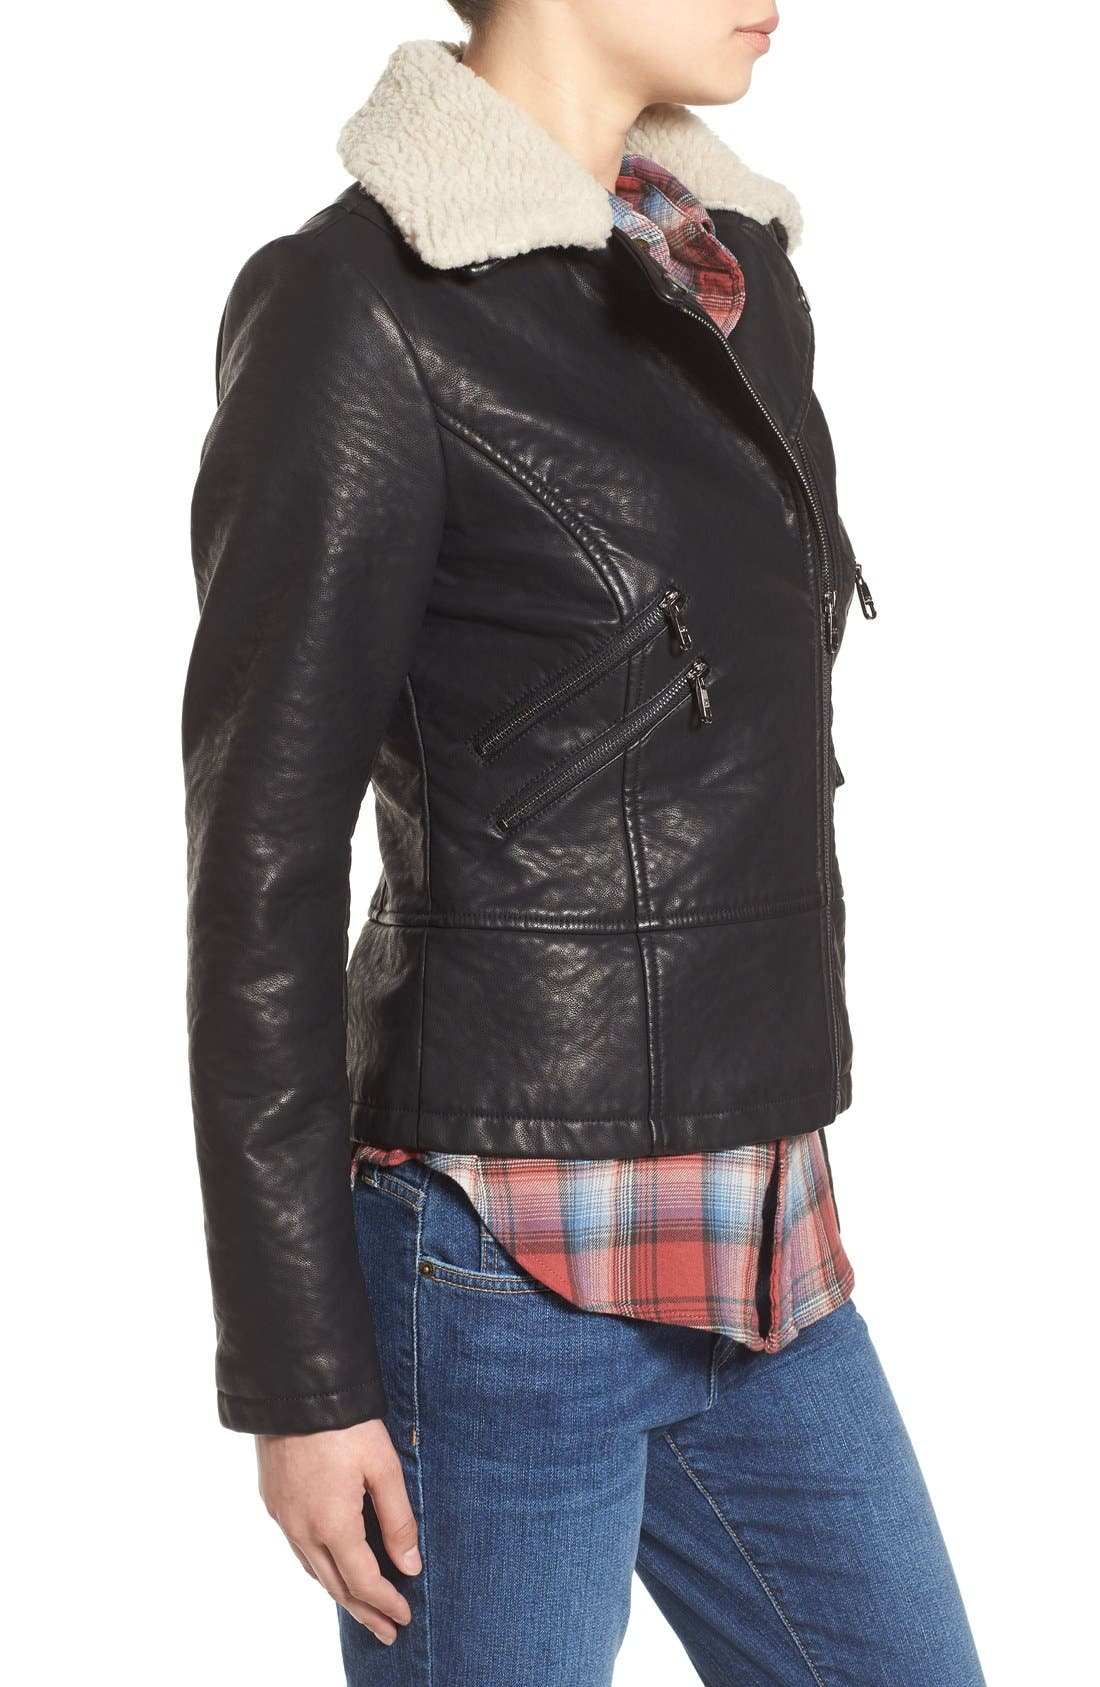 Alternate Image 3  - Steve Madden Faux Leather Moto Jacket with Faux Shearling Collar